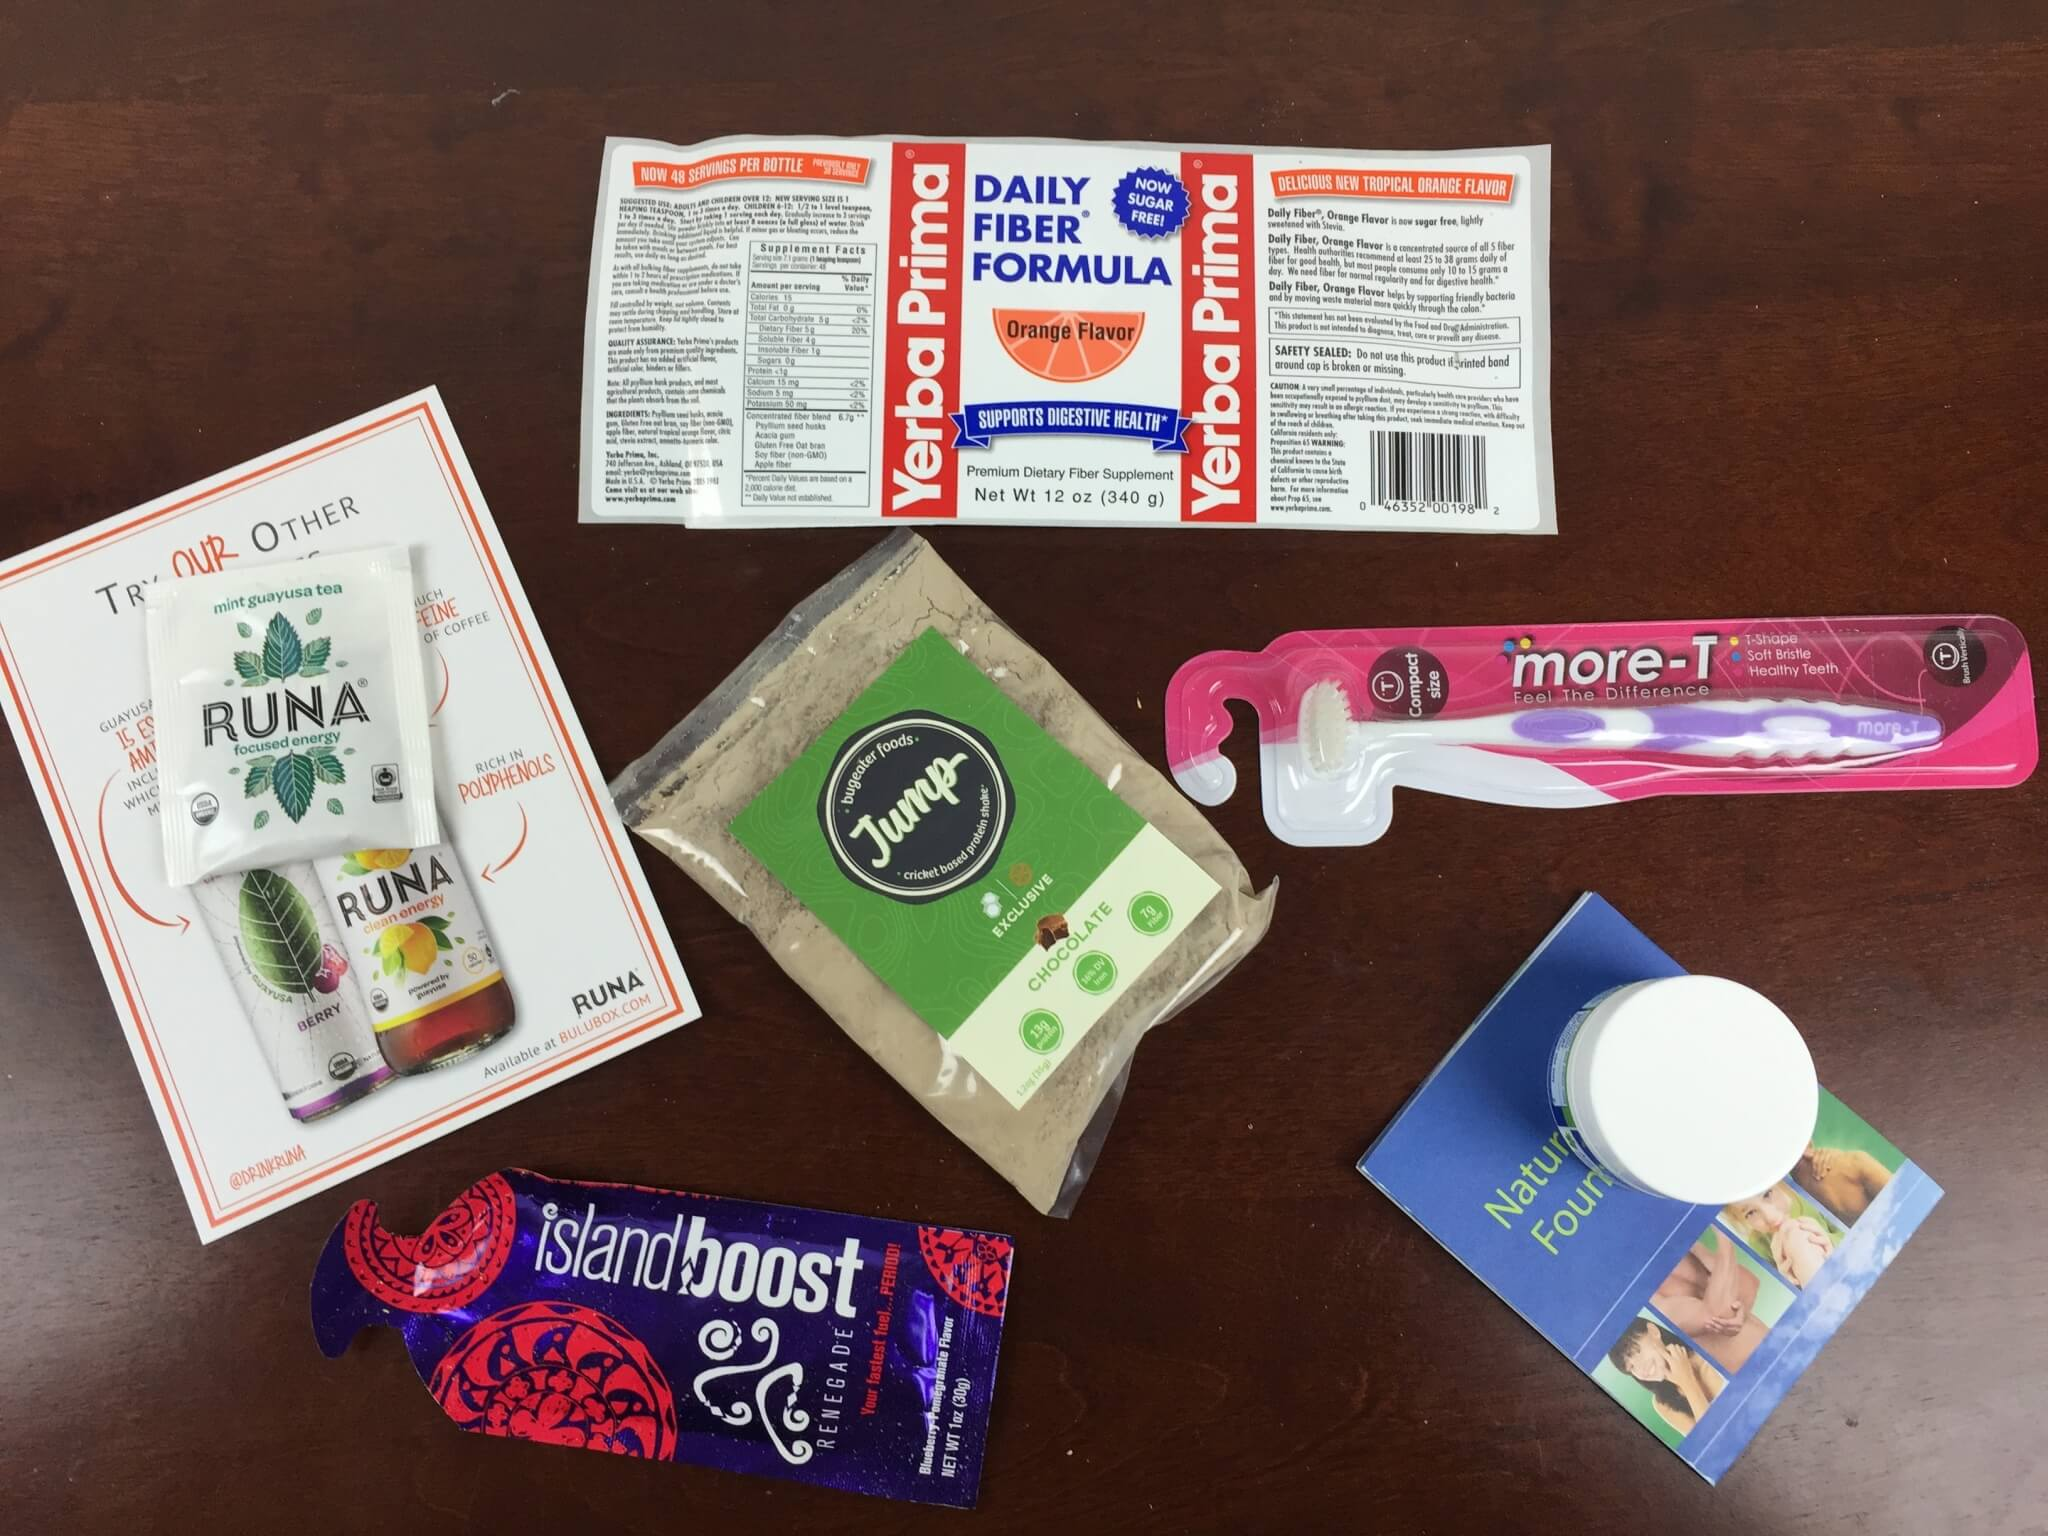 Bulu Box July 2015 Subscription Box Review & Half Off Code